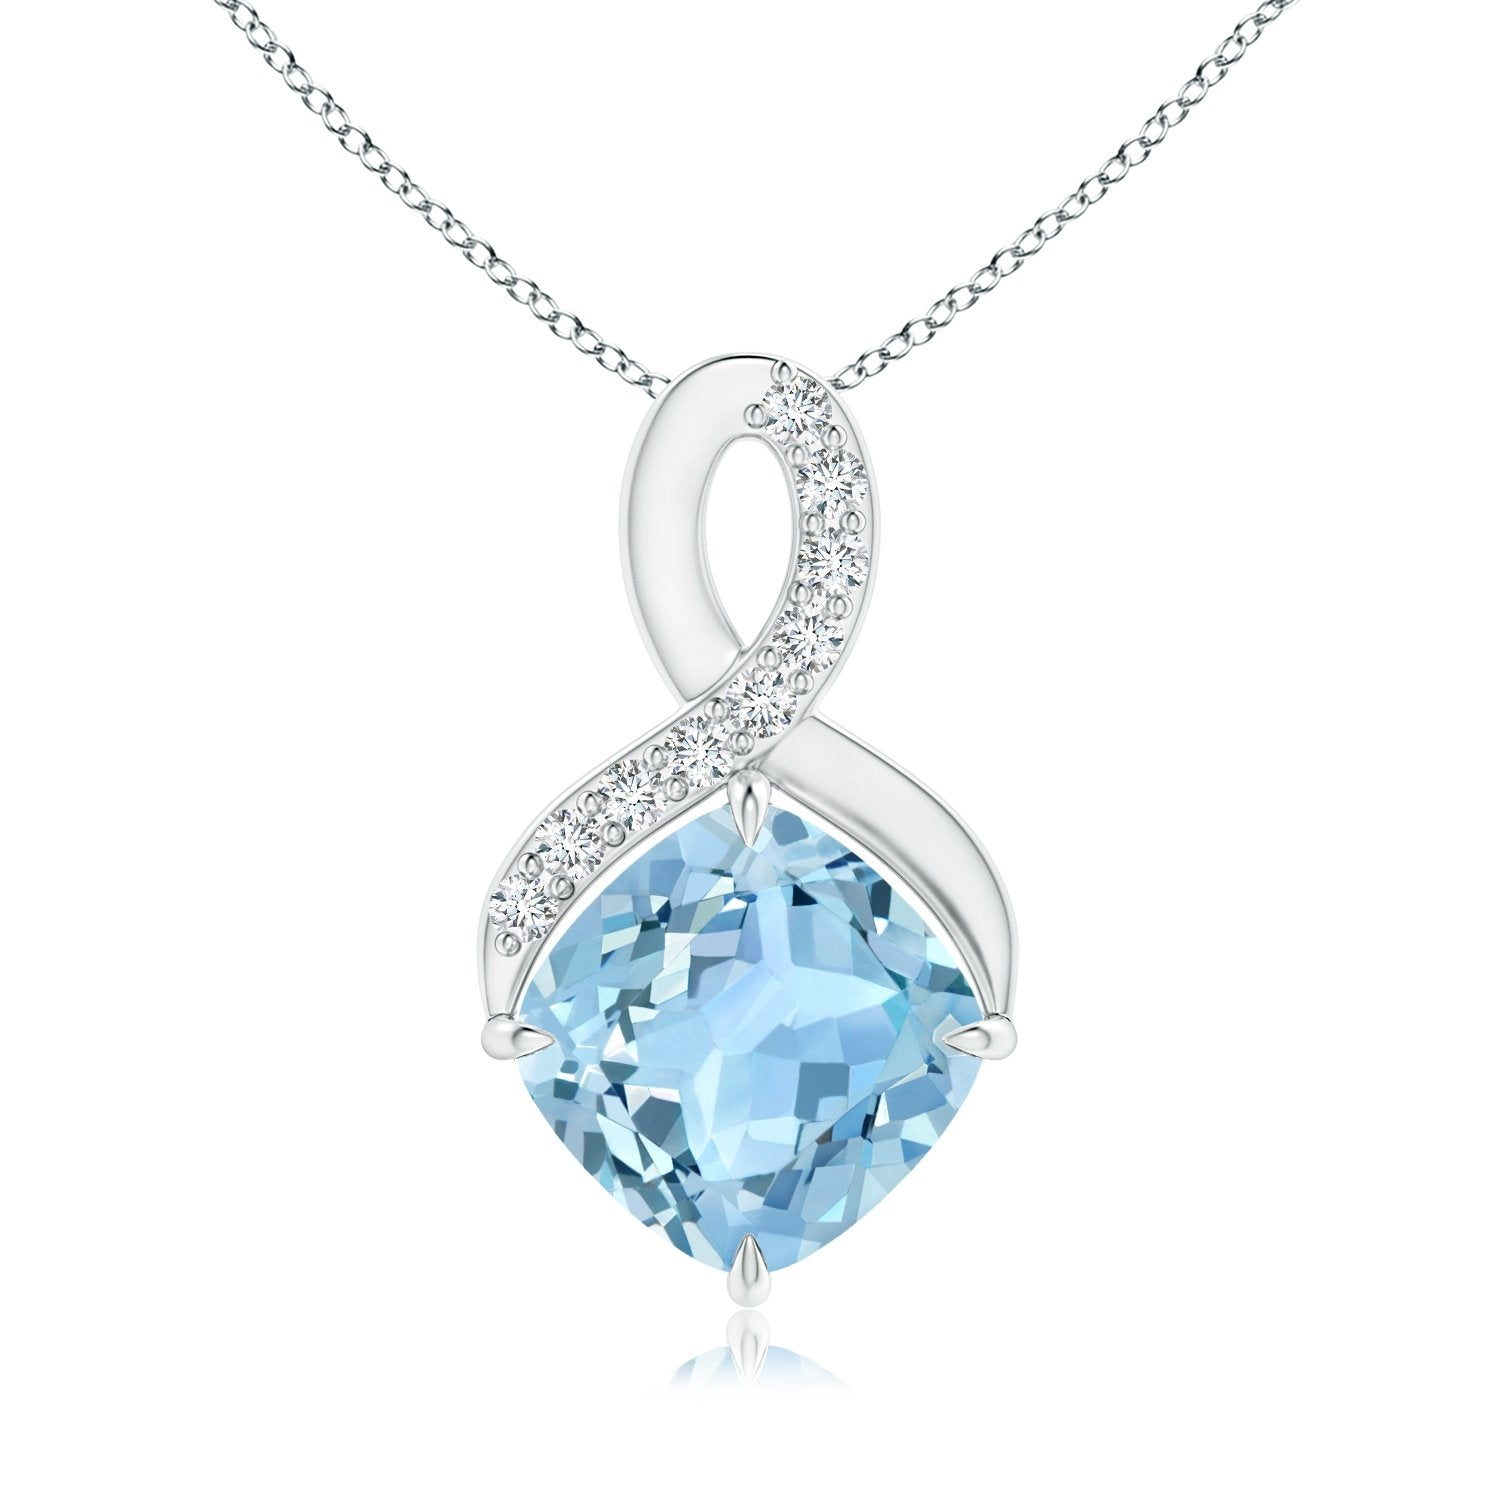 ANGARA Holiday Offer - Solitaire Claw Cushion Aquamarine Infinity Symbol Pendant for Women with Diamonds in 14K White Gold (6mm Aquamarine) - wiihuu